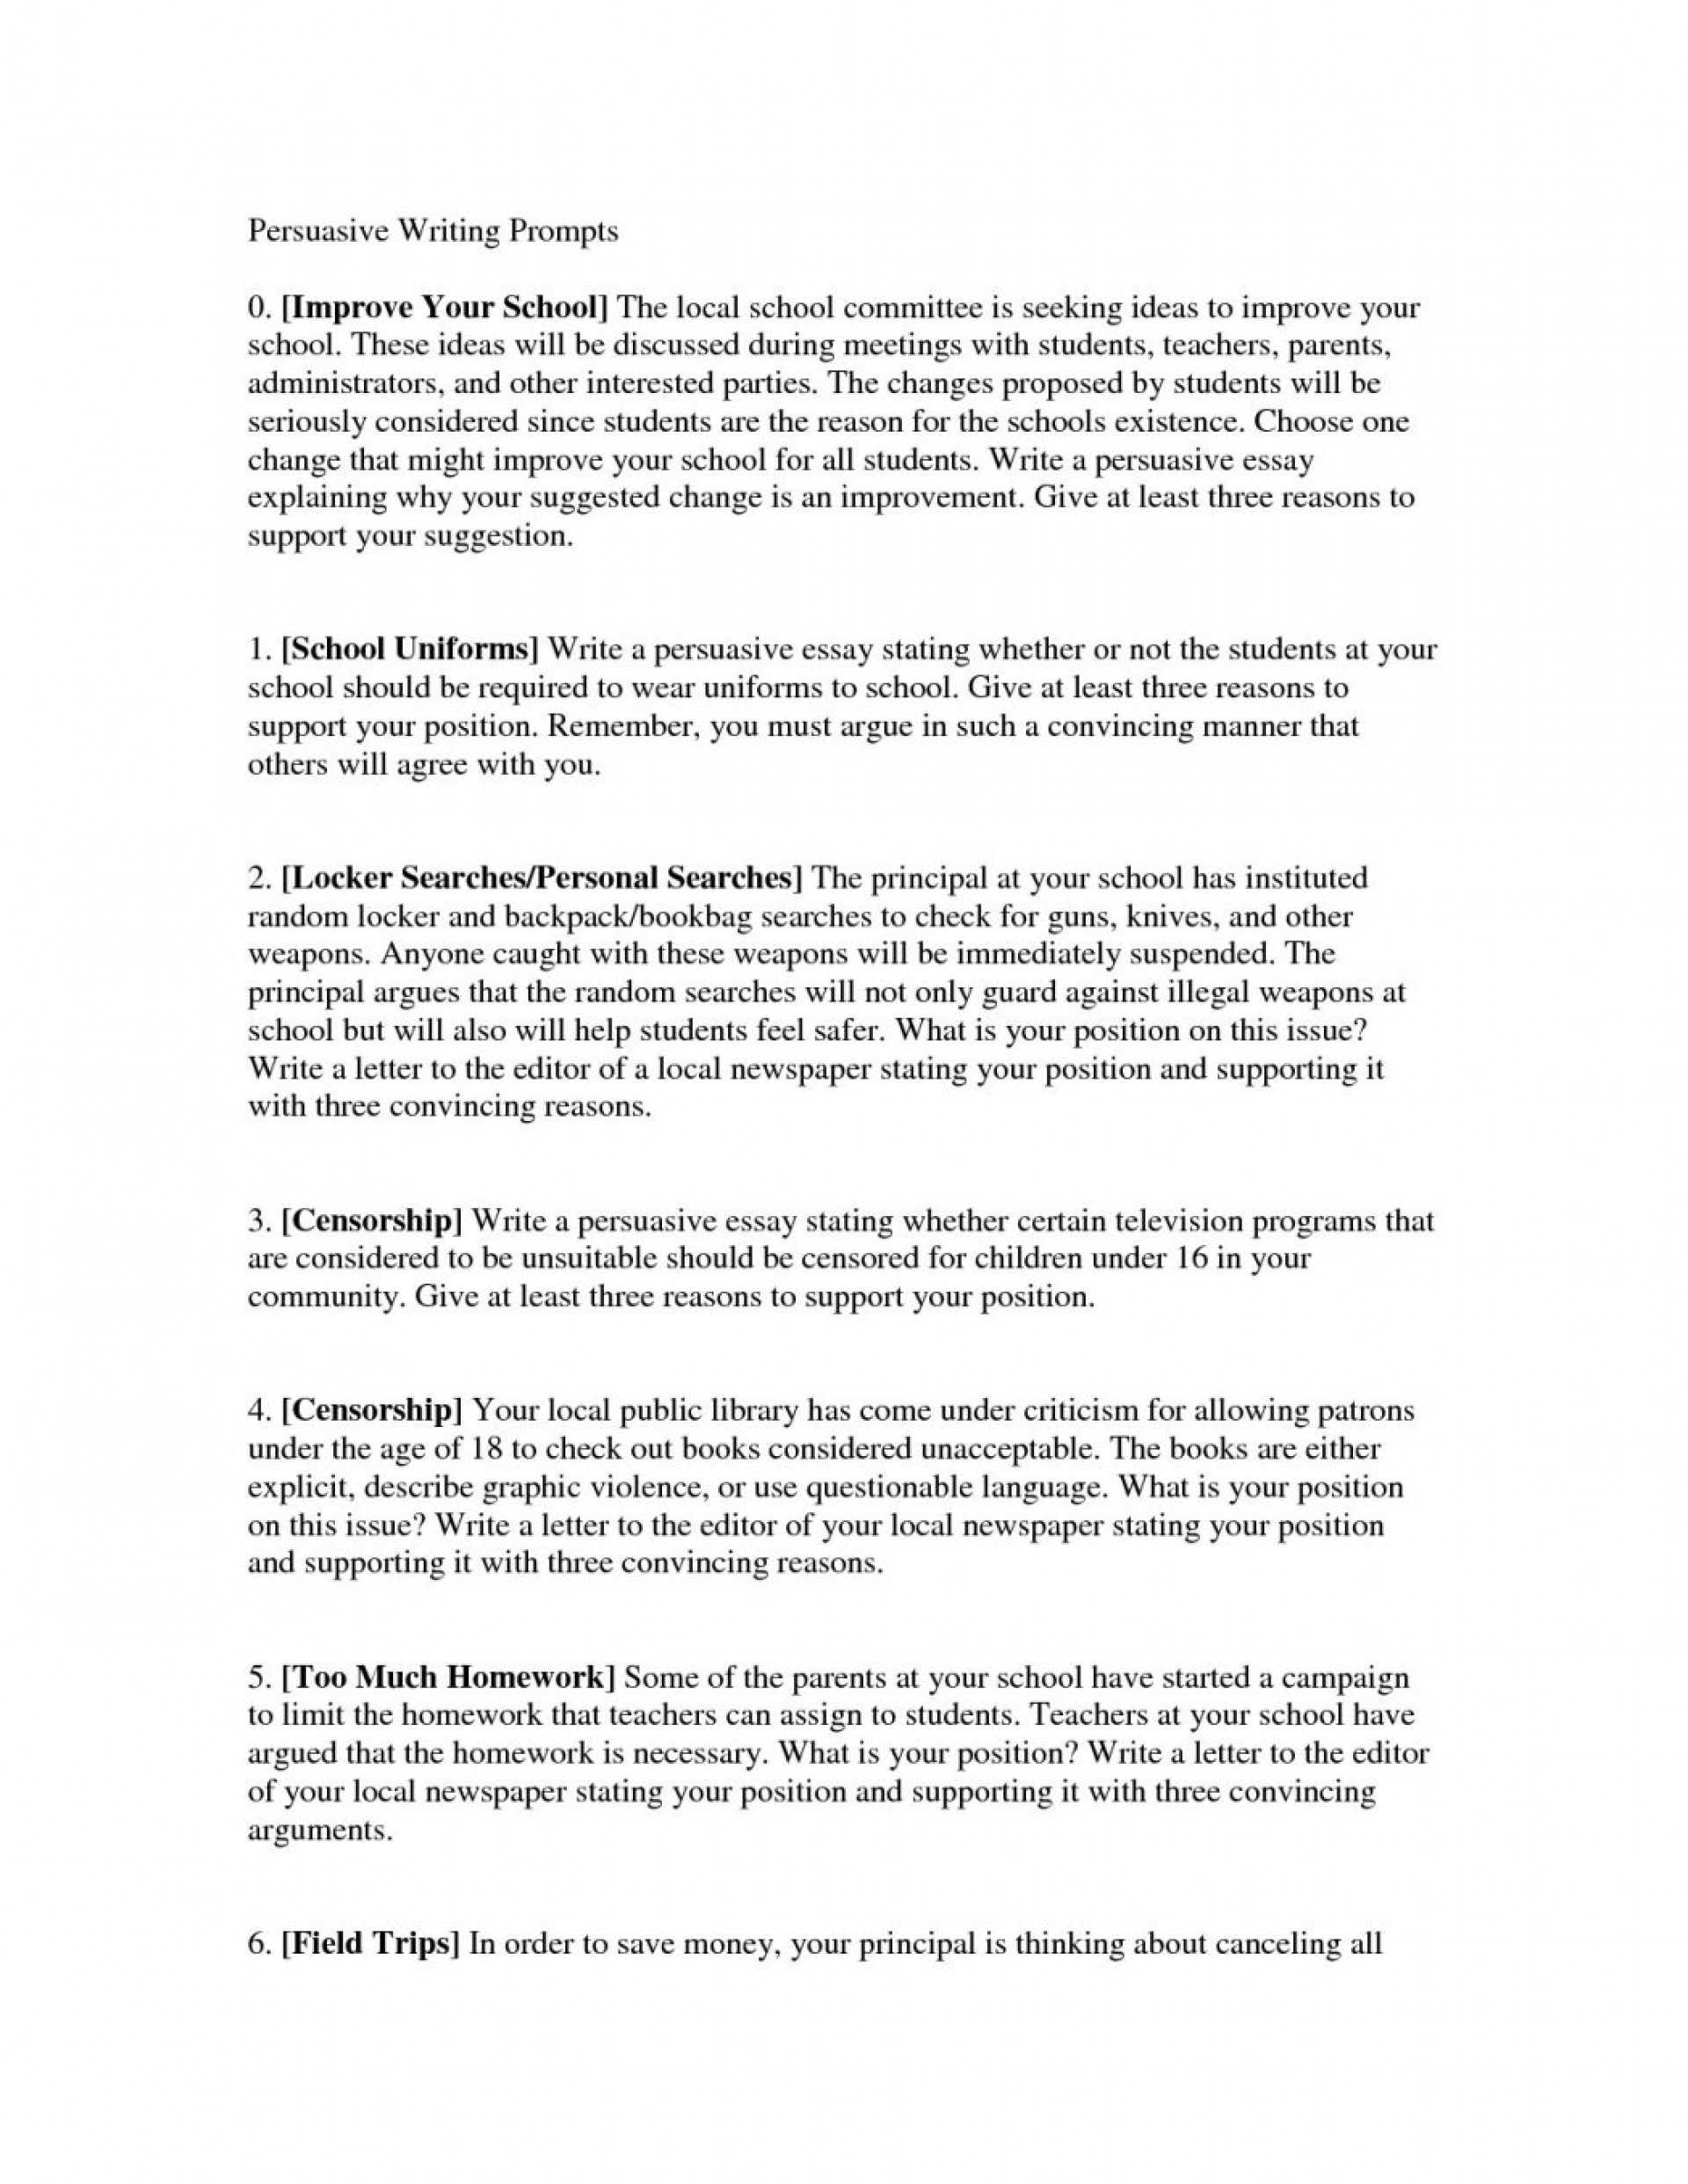 008 Persuasive Letter Example Grade Refrenceative Essay Examples 6th Ironviper Of P About Love On Education Free Abortion For High School Pdf College Middle Debate 1048x1356 Shocking Argumentative 1920